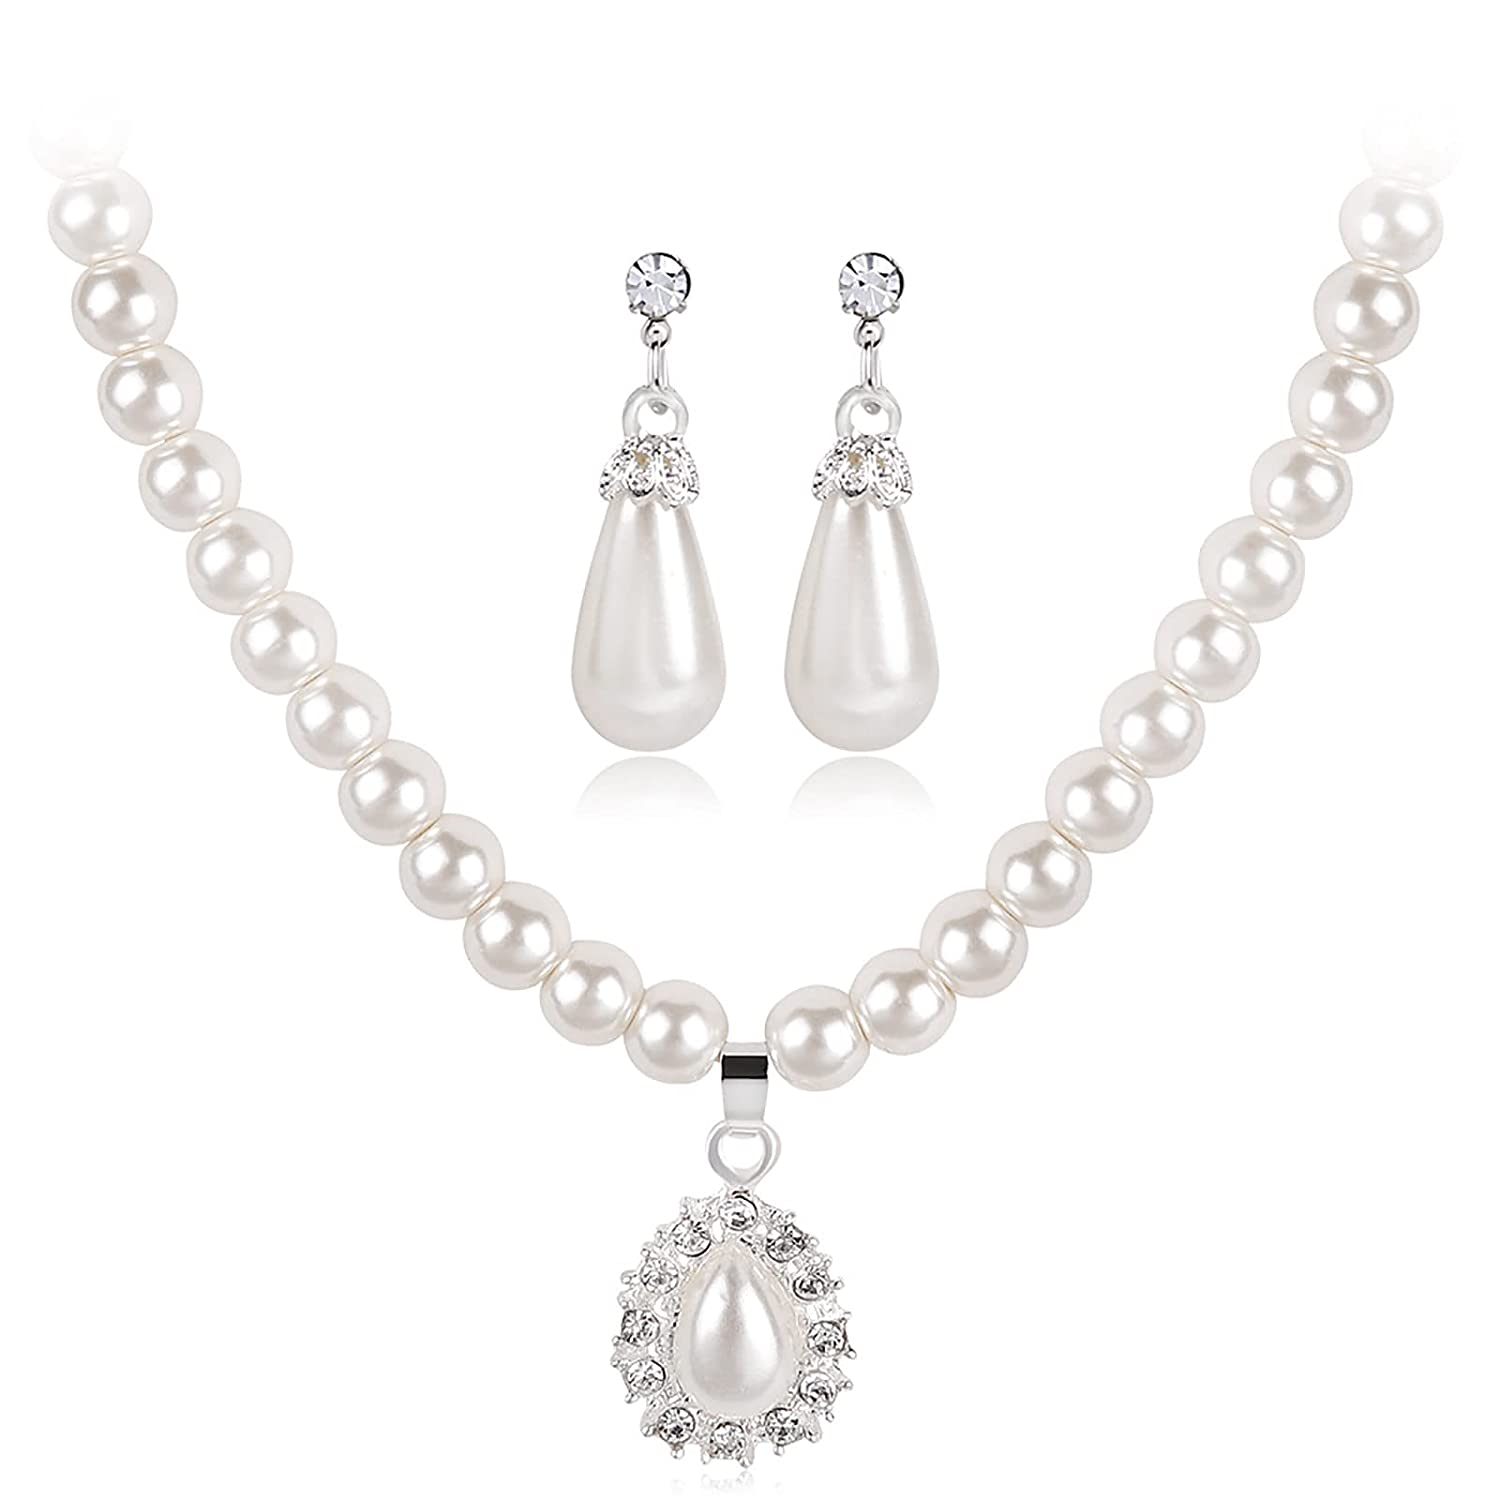 Pearl Necklace Earrings Sets Crystal Pearl Strands Bridal wedding jewelry for Women Girls (White B)